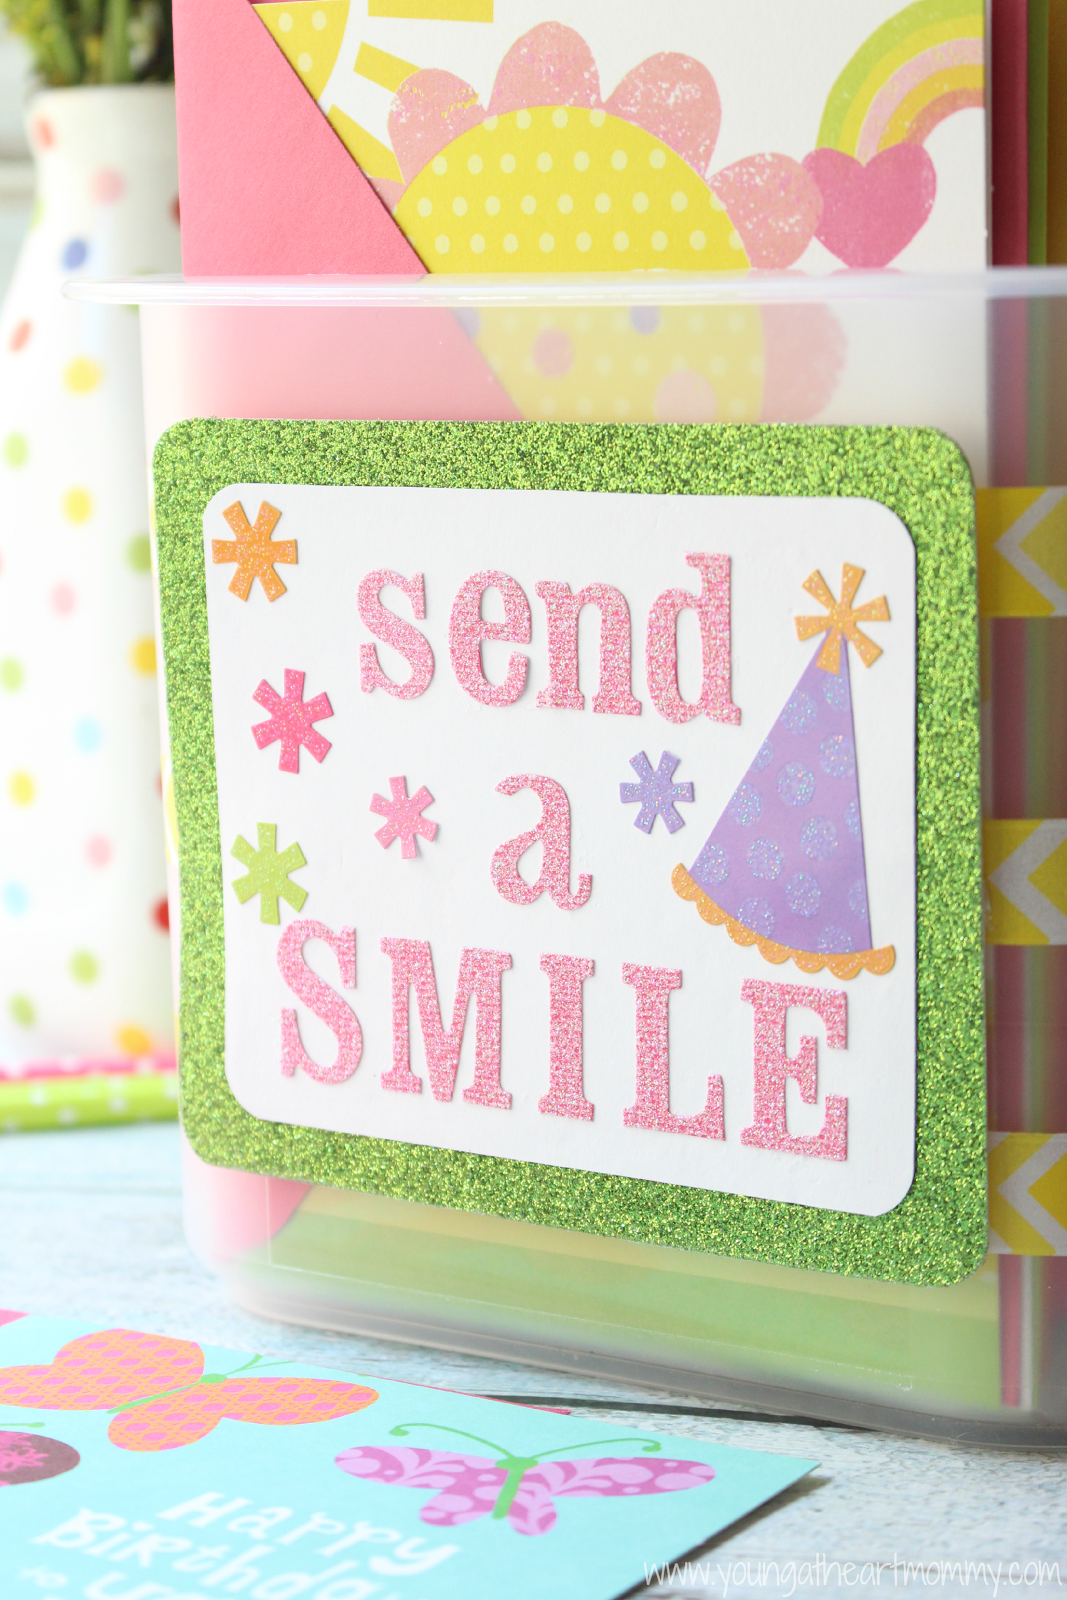 Send A Smile With Hallmark Diy Greeting Card Organizer Young At